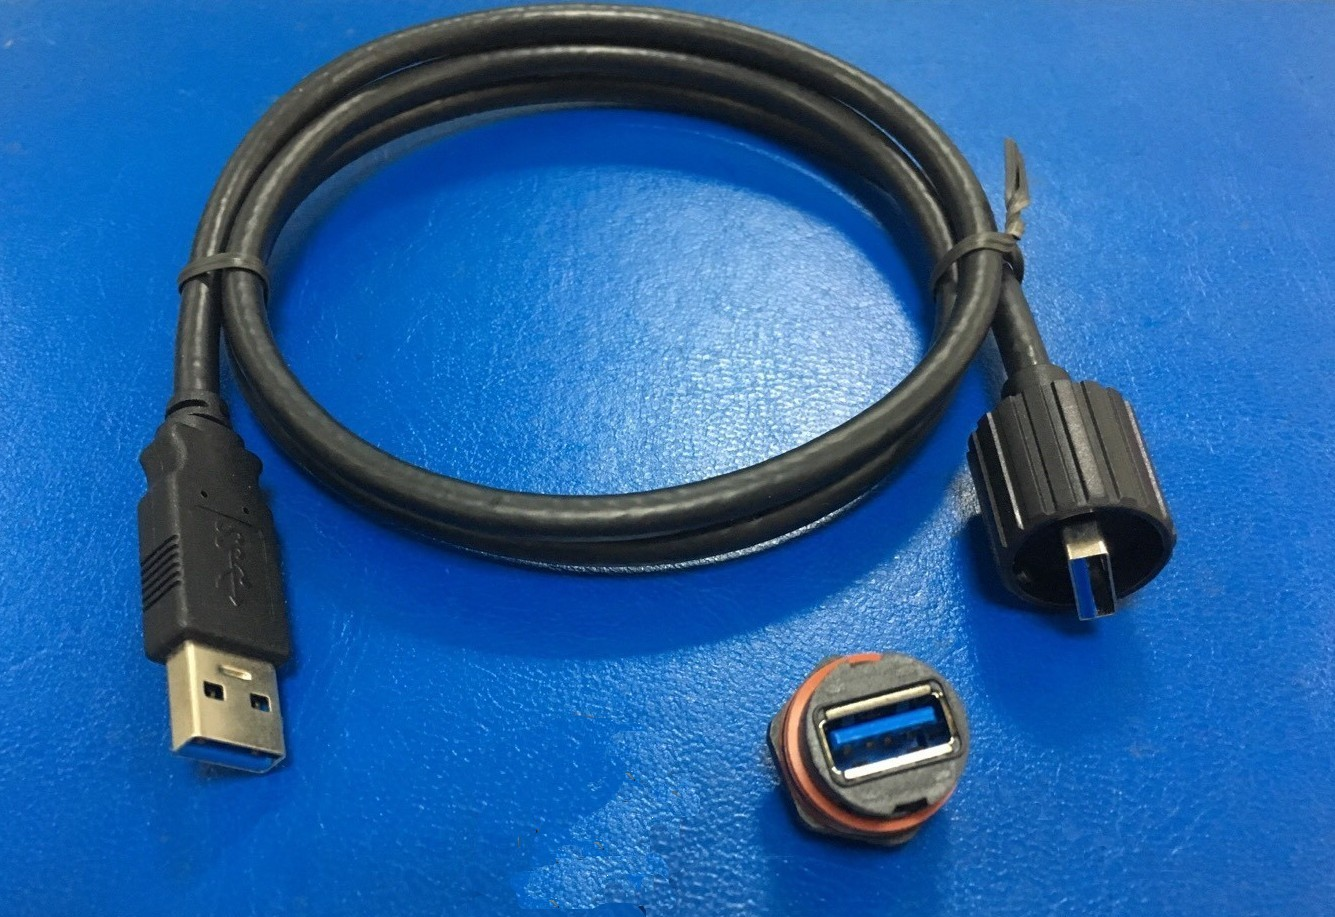 USB 3.0 WATERPROOF CABLE